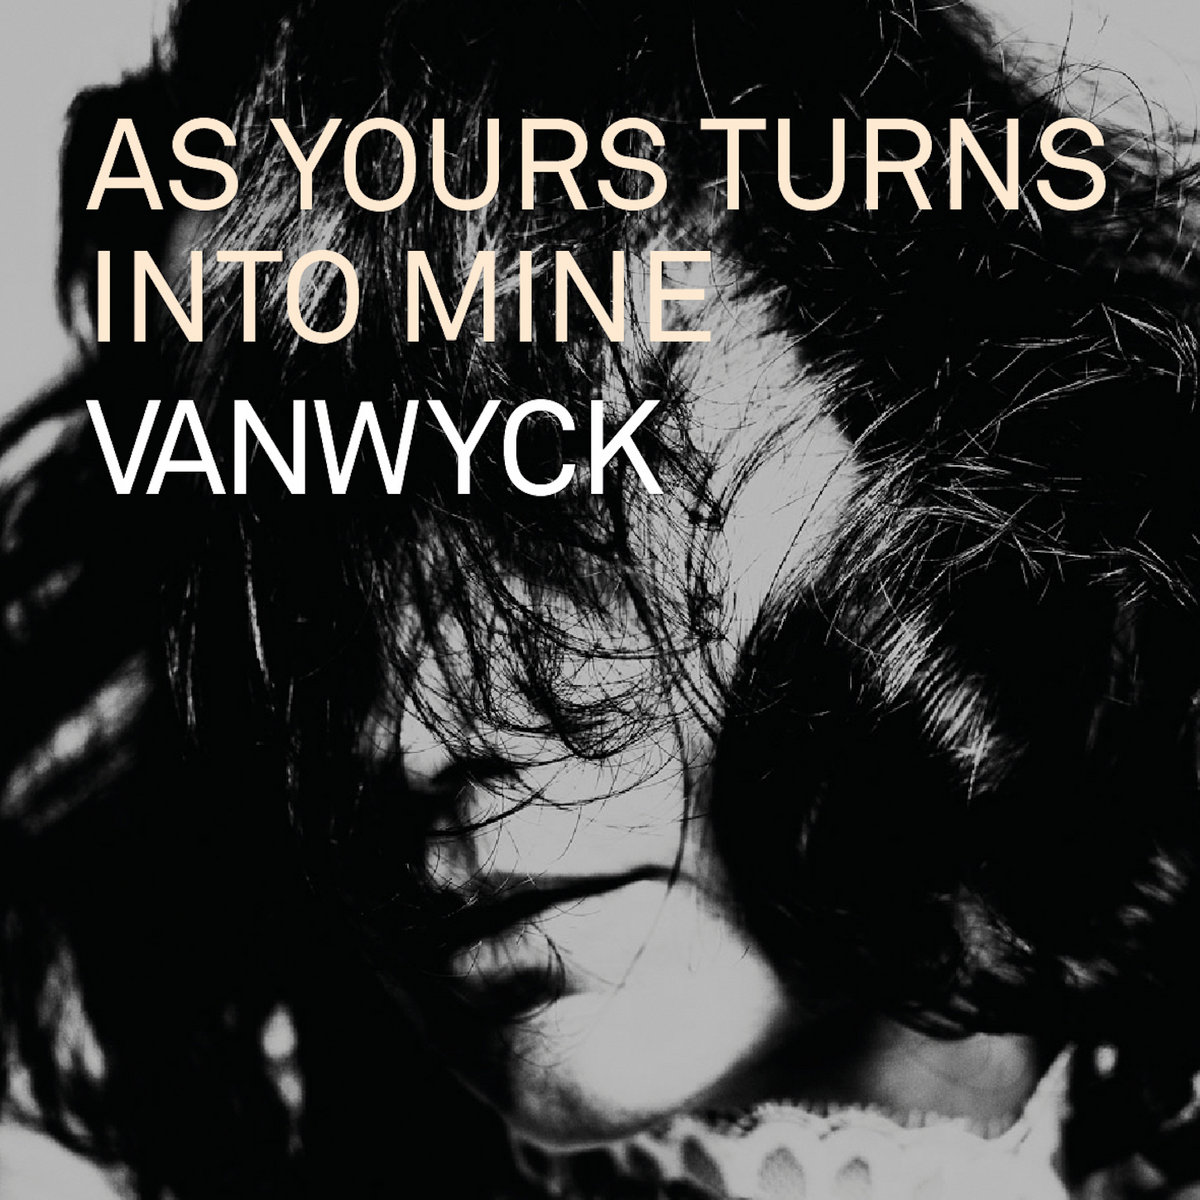 As Yours Turns Into Mine by VanWyck